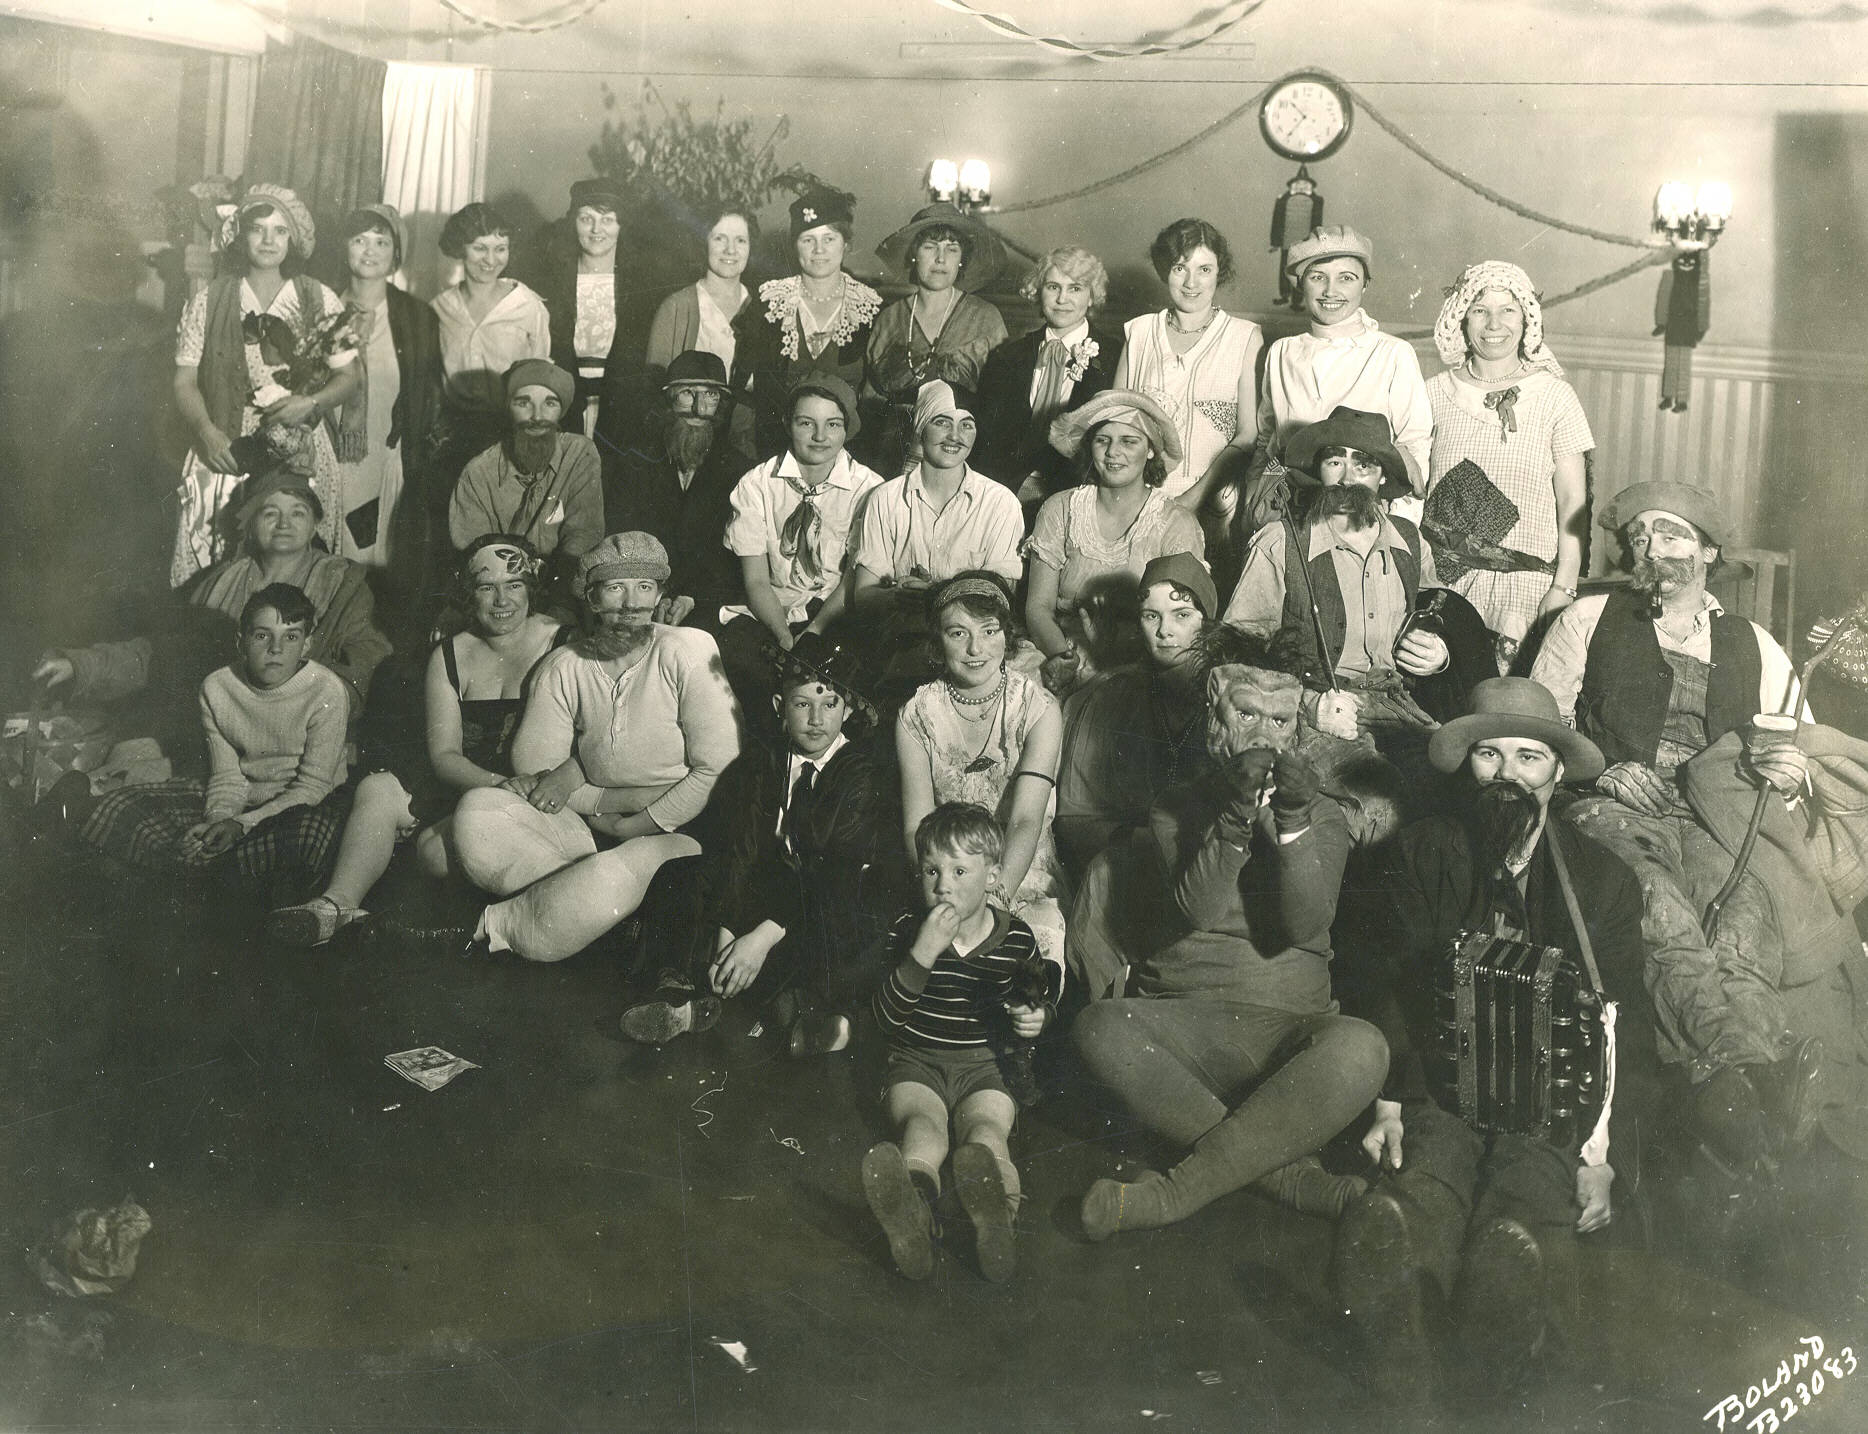 These telephone operators and their families enjoyed a Halloween party in October of 1930. Costumes of gold miners, hobos, strongmen, wandering musicians and one gorilla were on display. In 1930 the Pacific Telephone & Telegraph Company provided local and long distance service to the residences and businesses of Tacoma. At that time their main office was at 919 Market. Names of those in attendance were not provided.